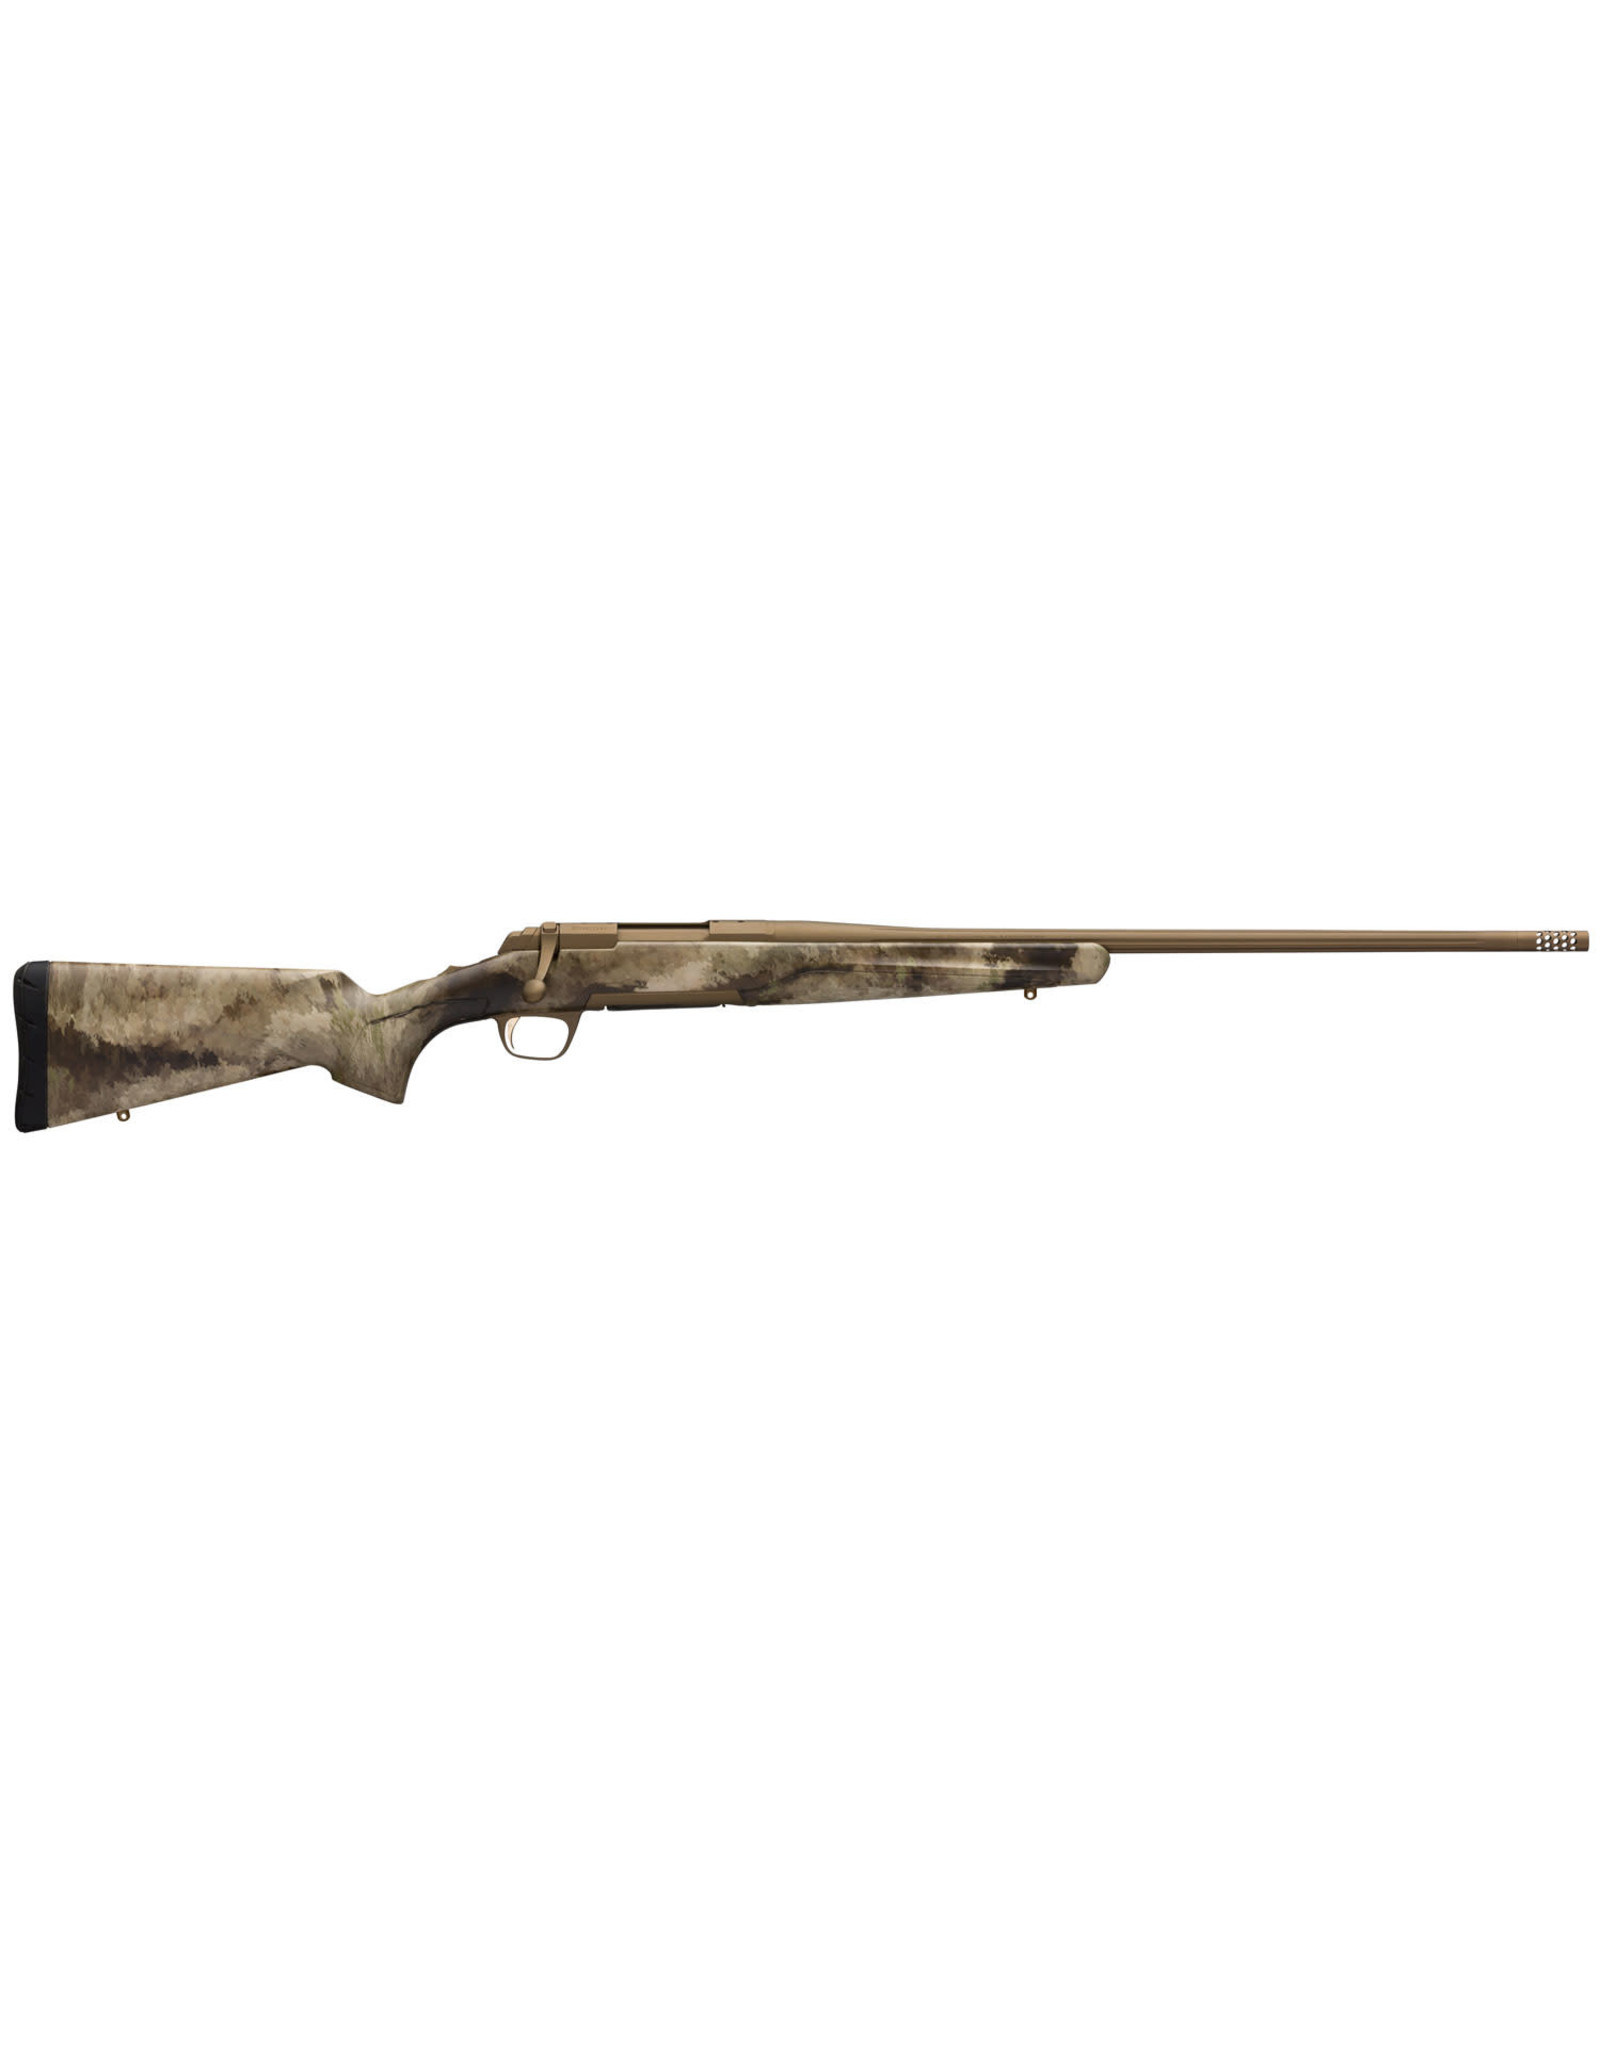 "Browning Browning X-Bolt Hells Canyon Speed .270 WSM 23"" bbl"